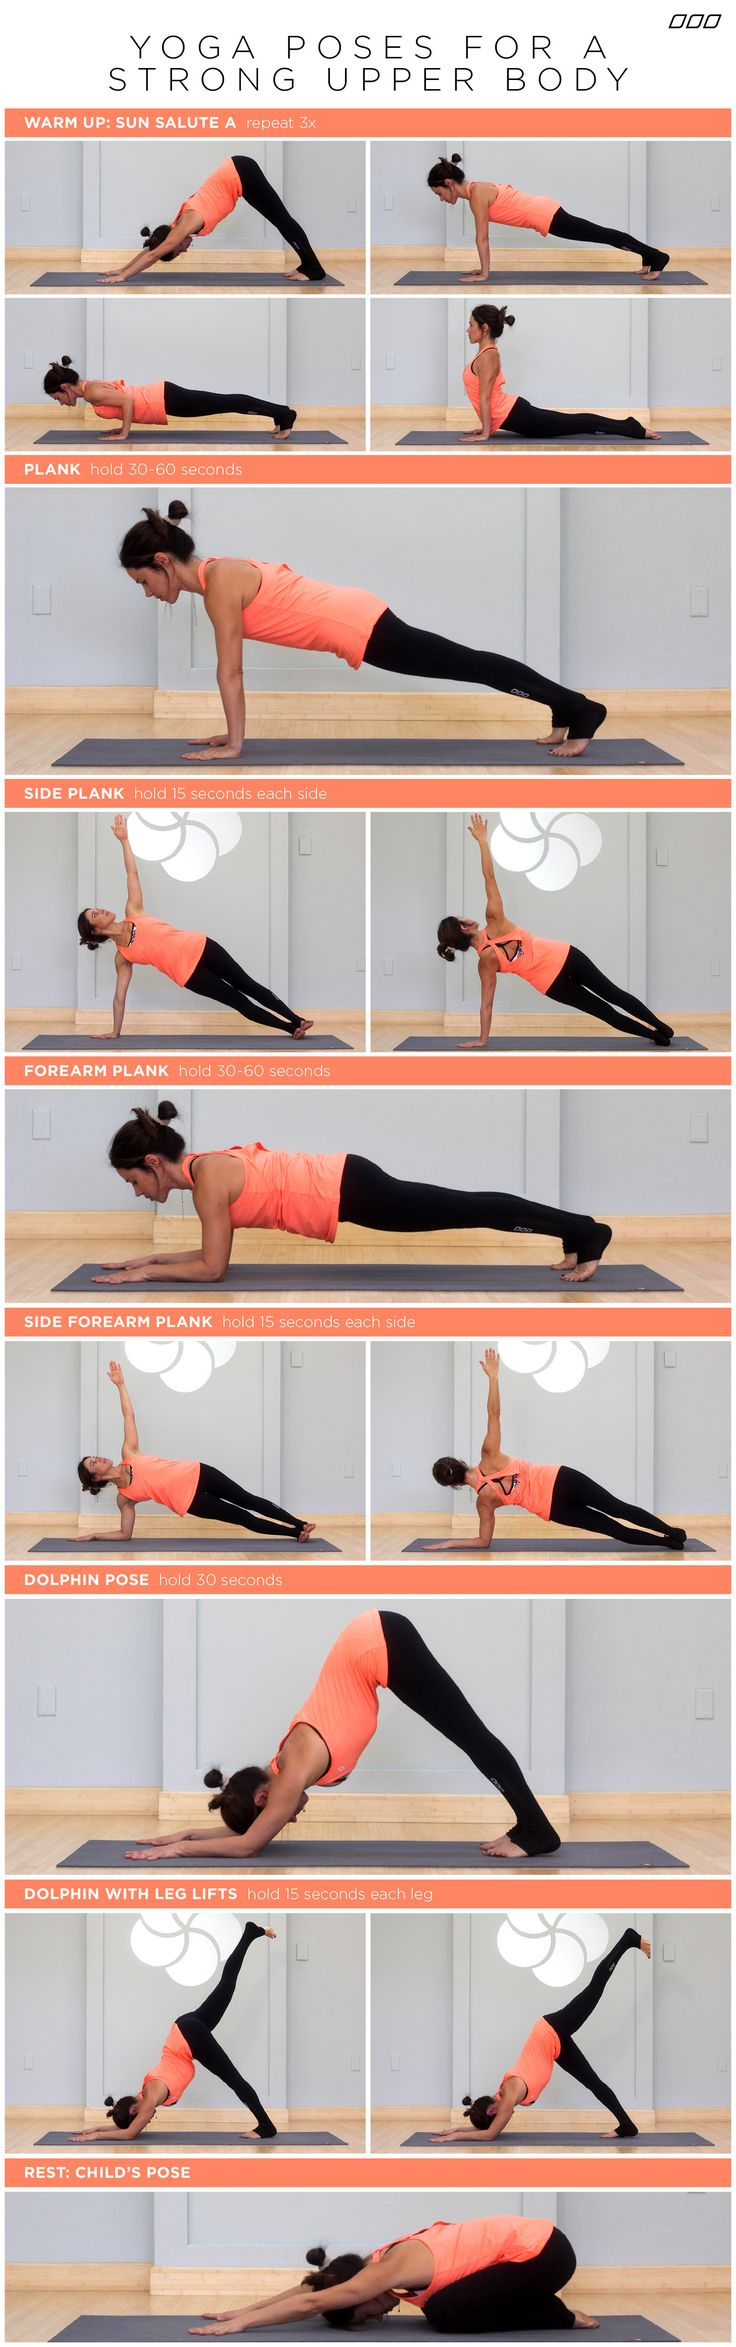 yoga-poses-for-a-strong-upper-body